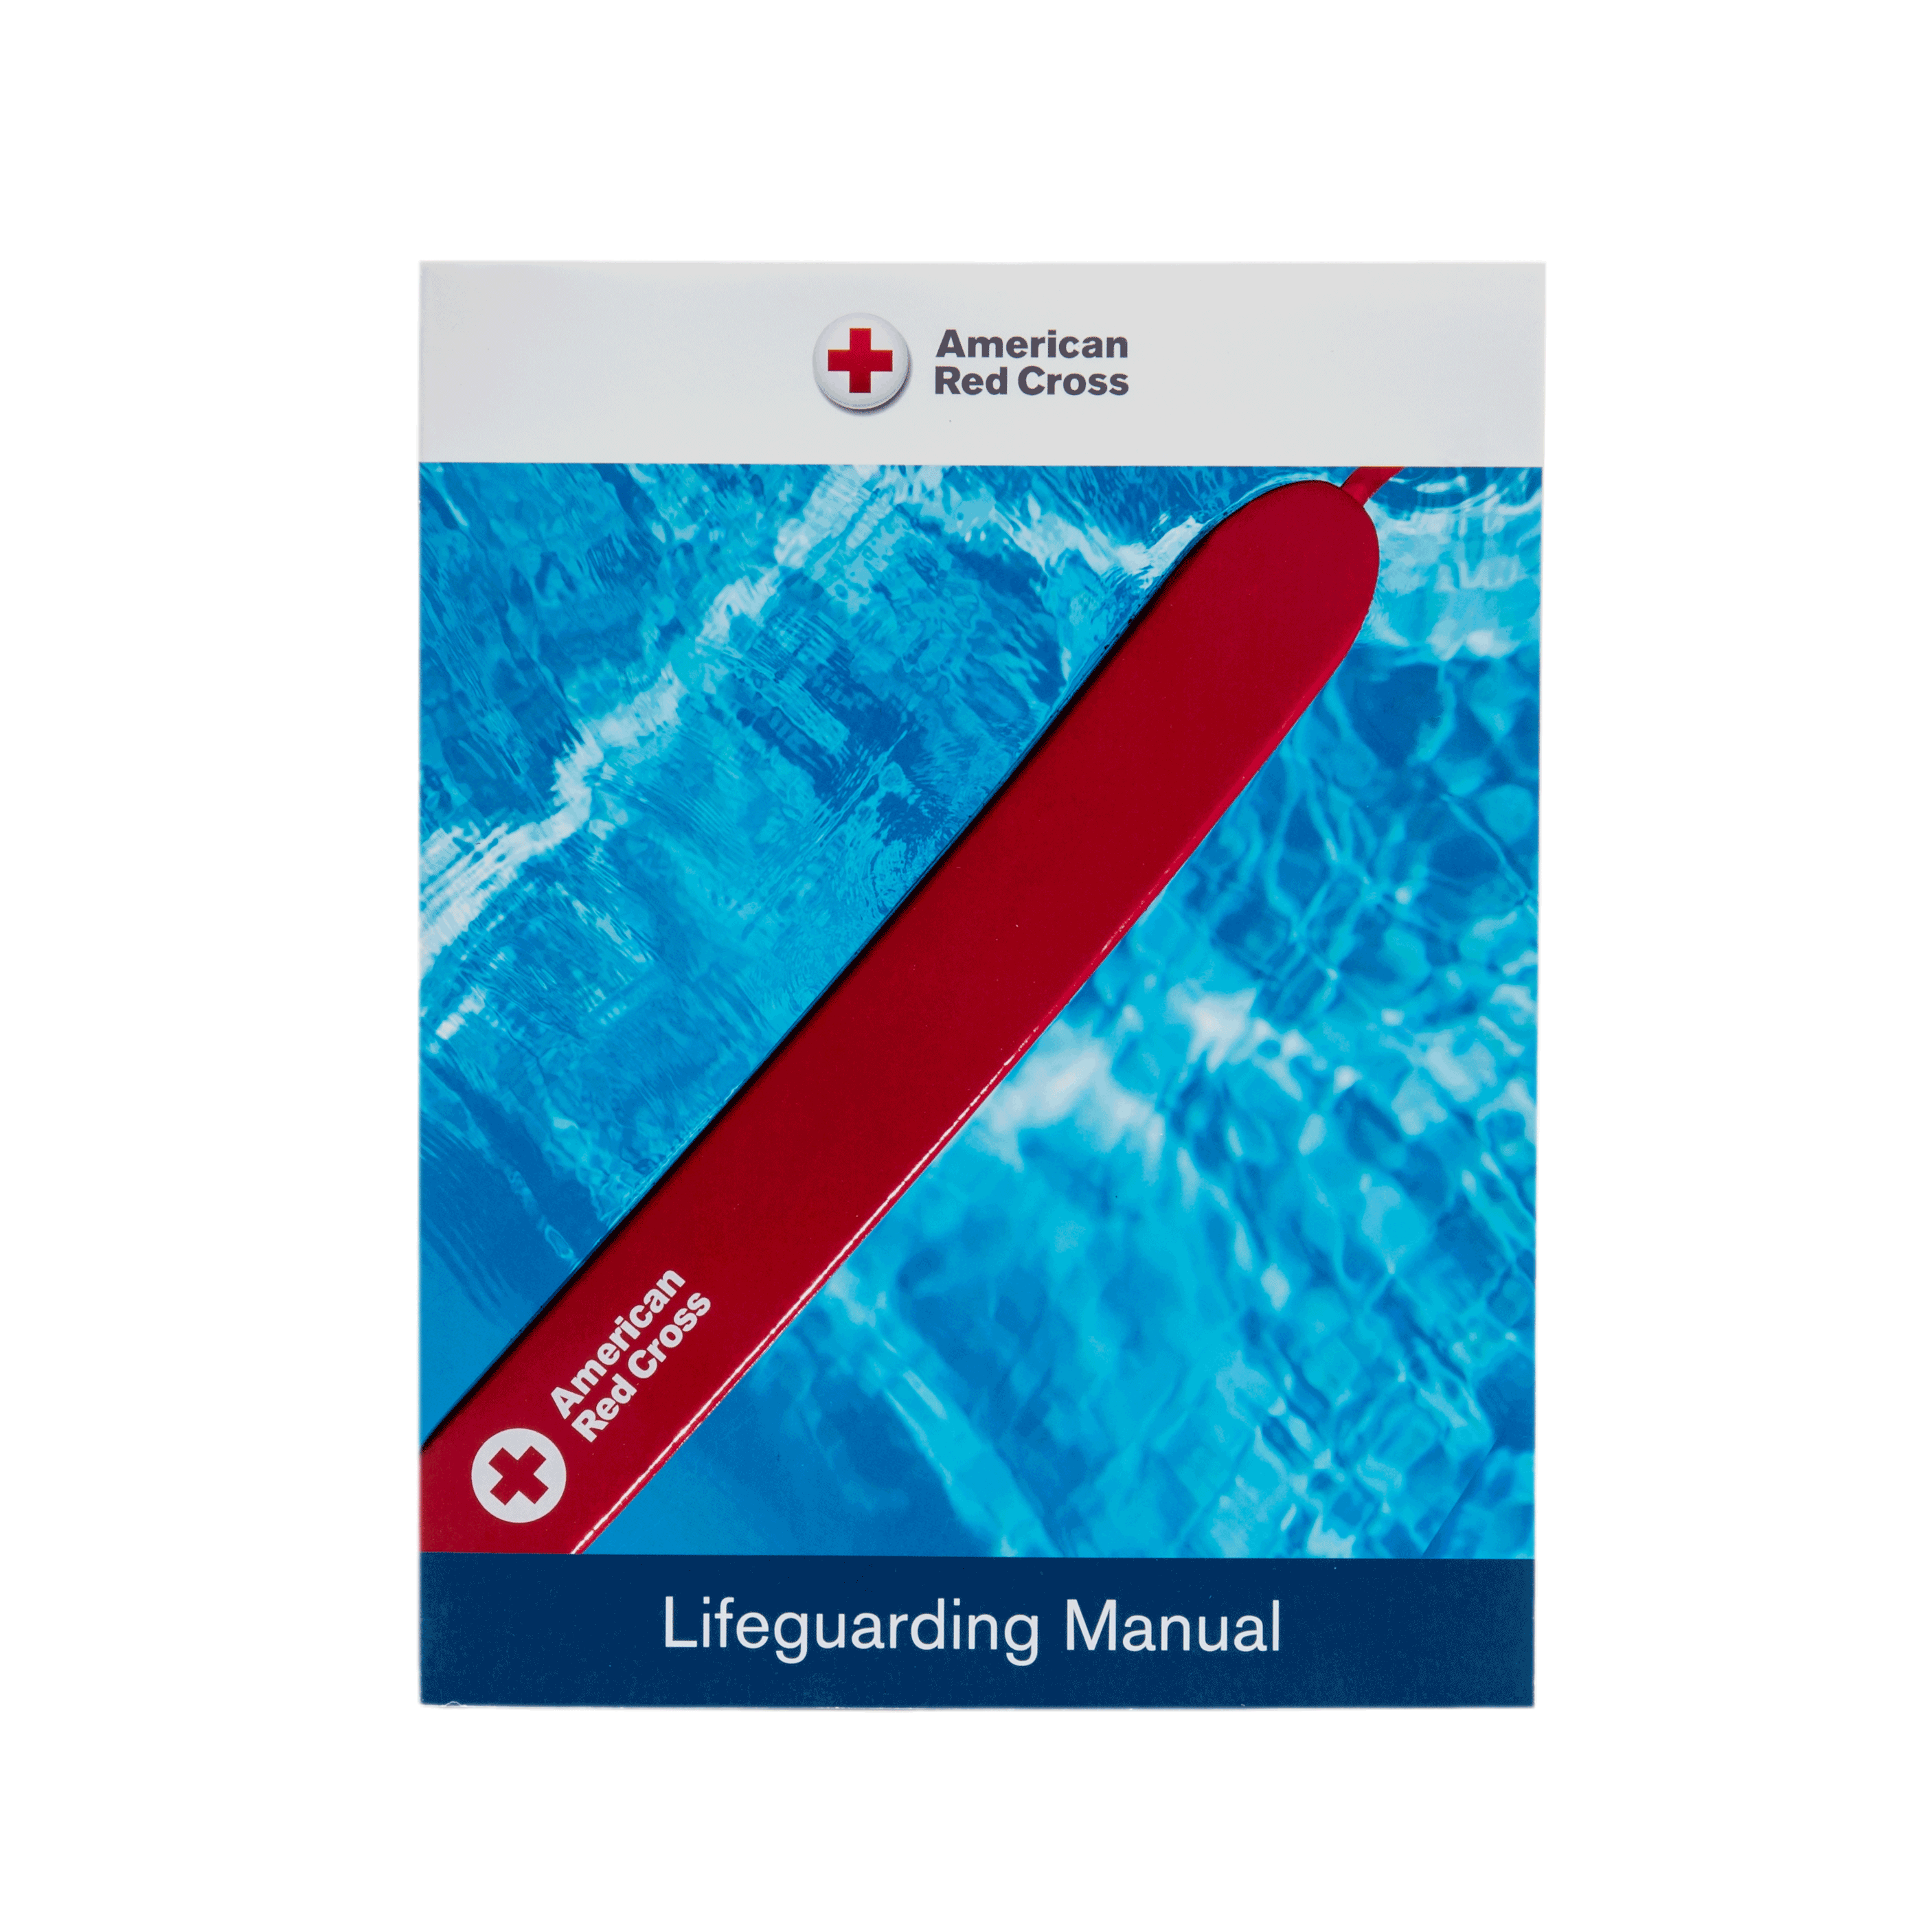 american red cross lifeguarding manual red cross store rh redcross org american red cross lifeguard manual online american red cross lifeguard manual 2018